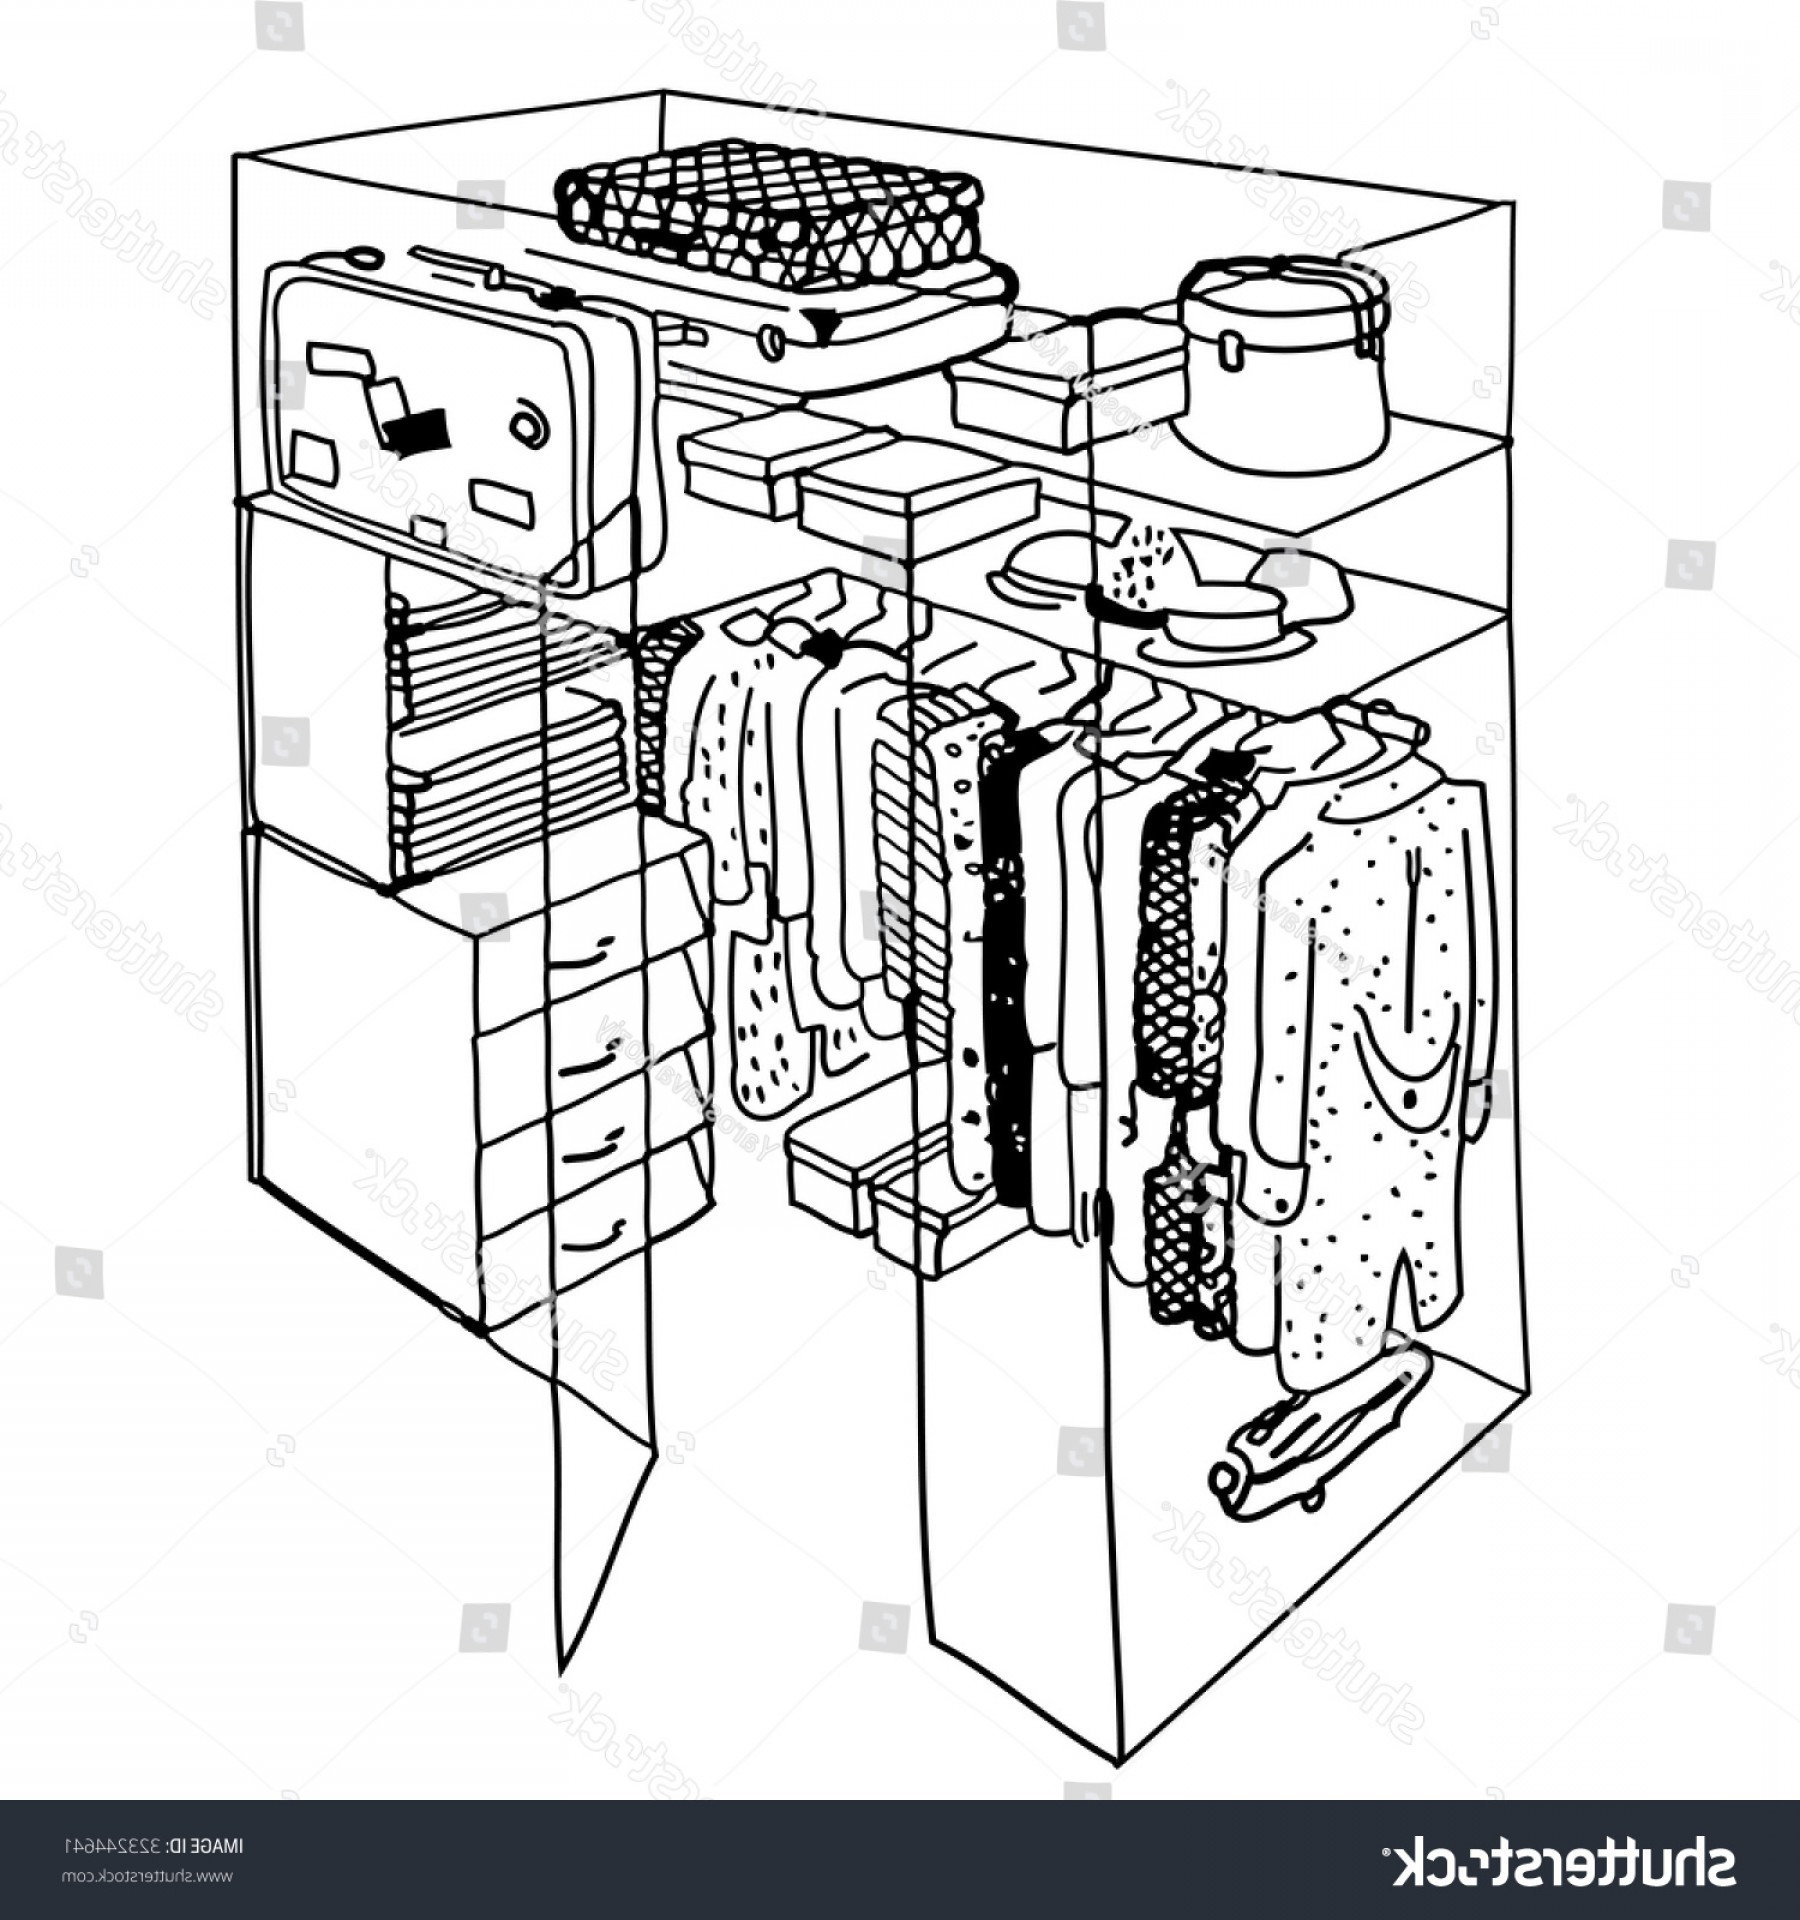 Hand Lathe Vector: Wardrobe Vector Hand Drawn Illustration